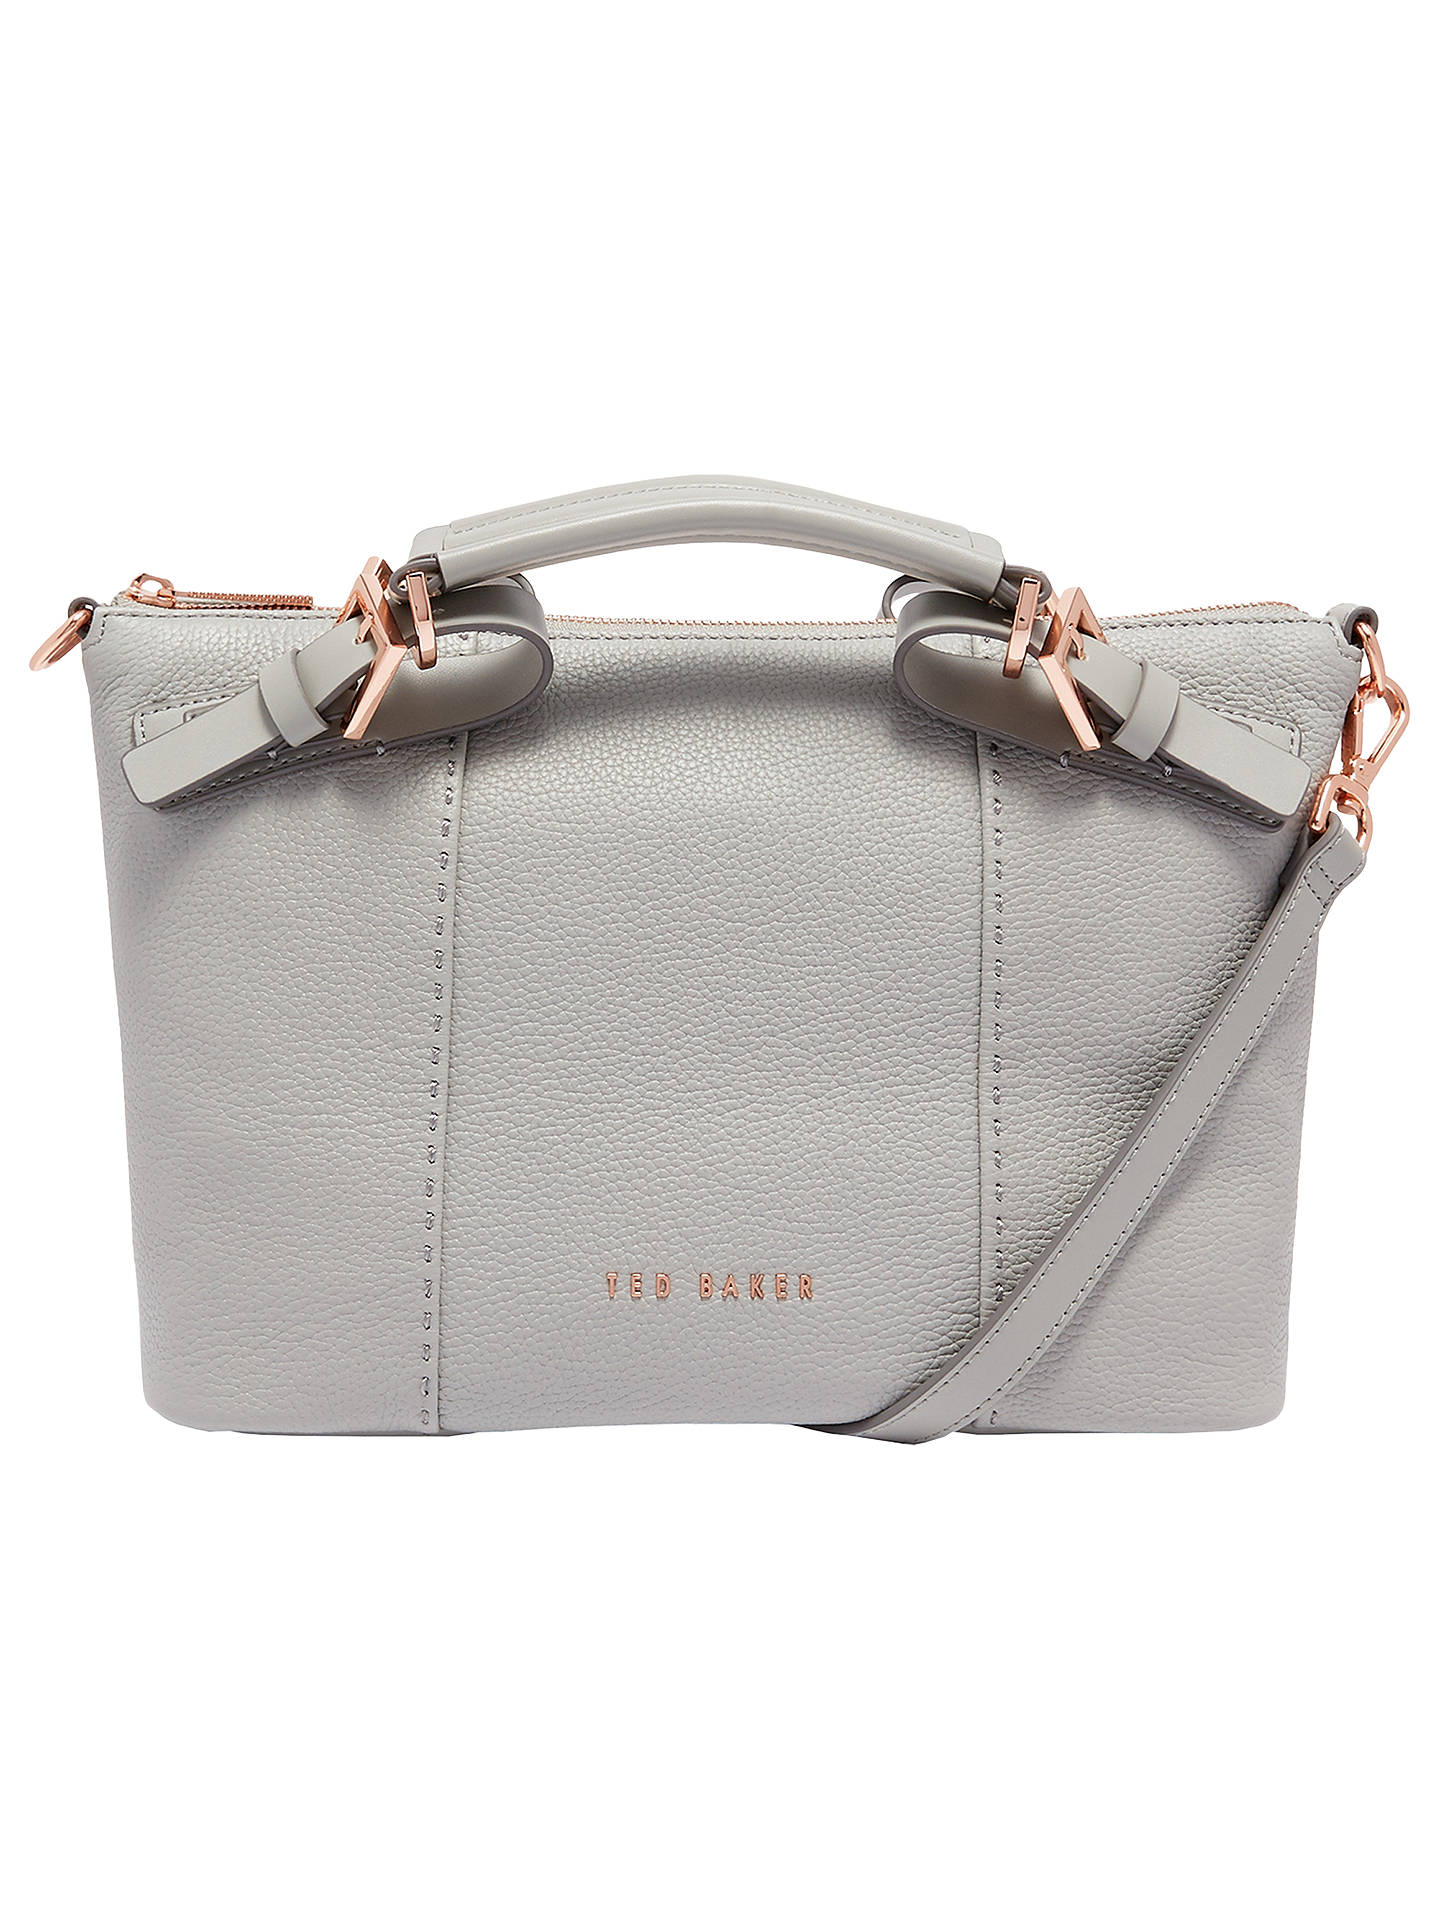 Ted Baker Salbett Pop Hand Leather Small Tote Bag Mid Grey Online At Johnlewis